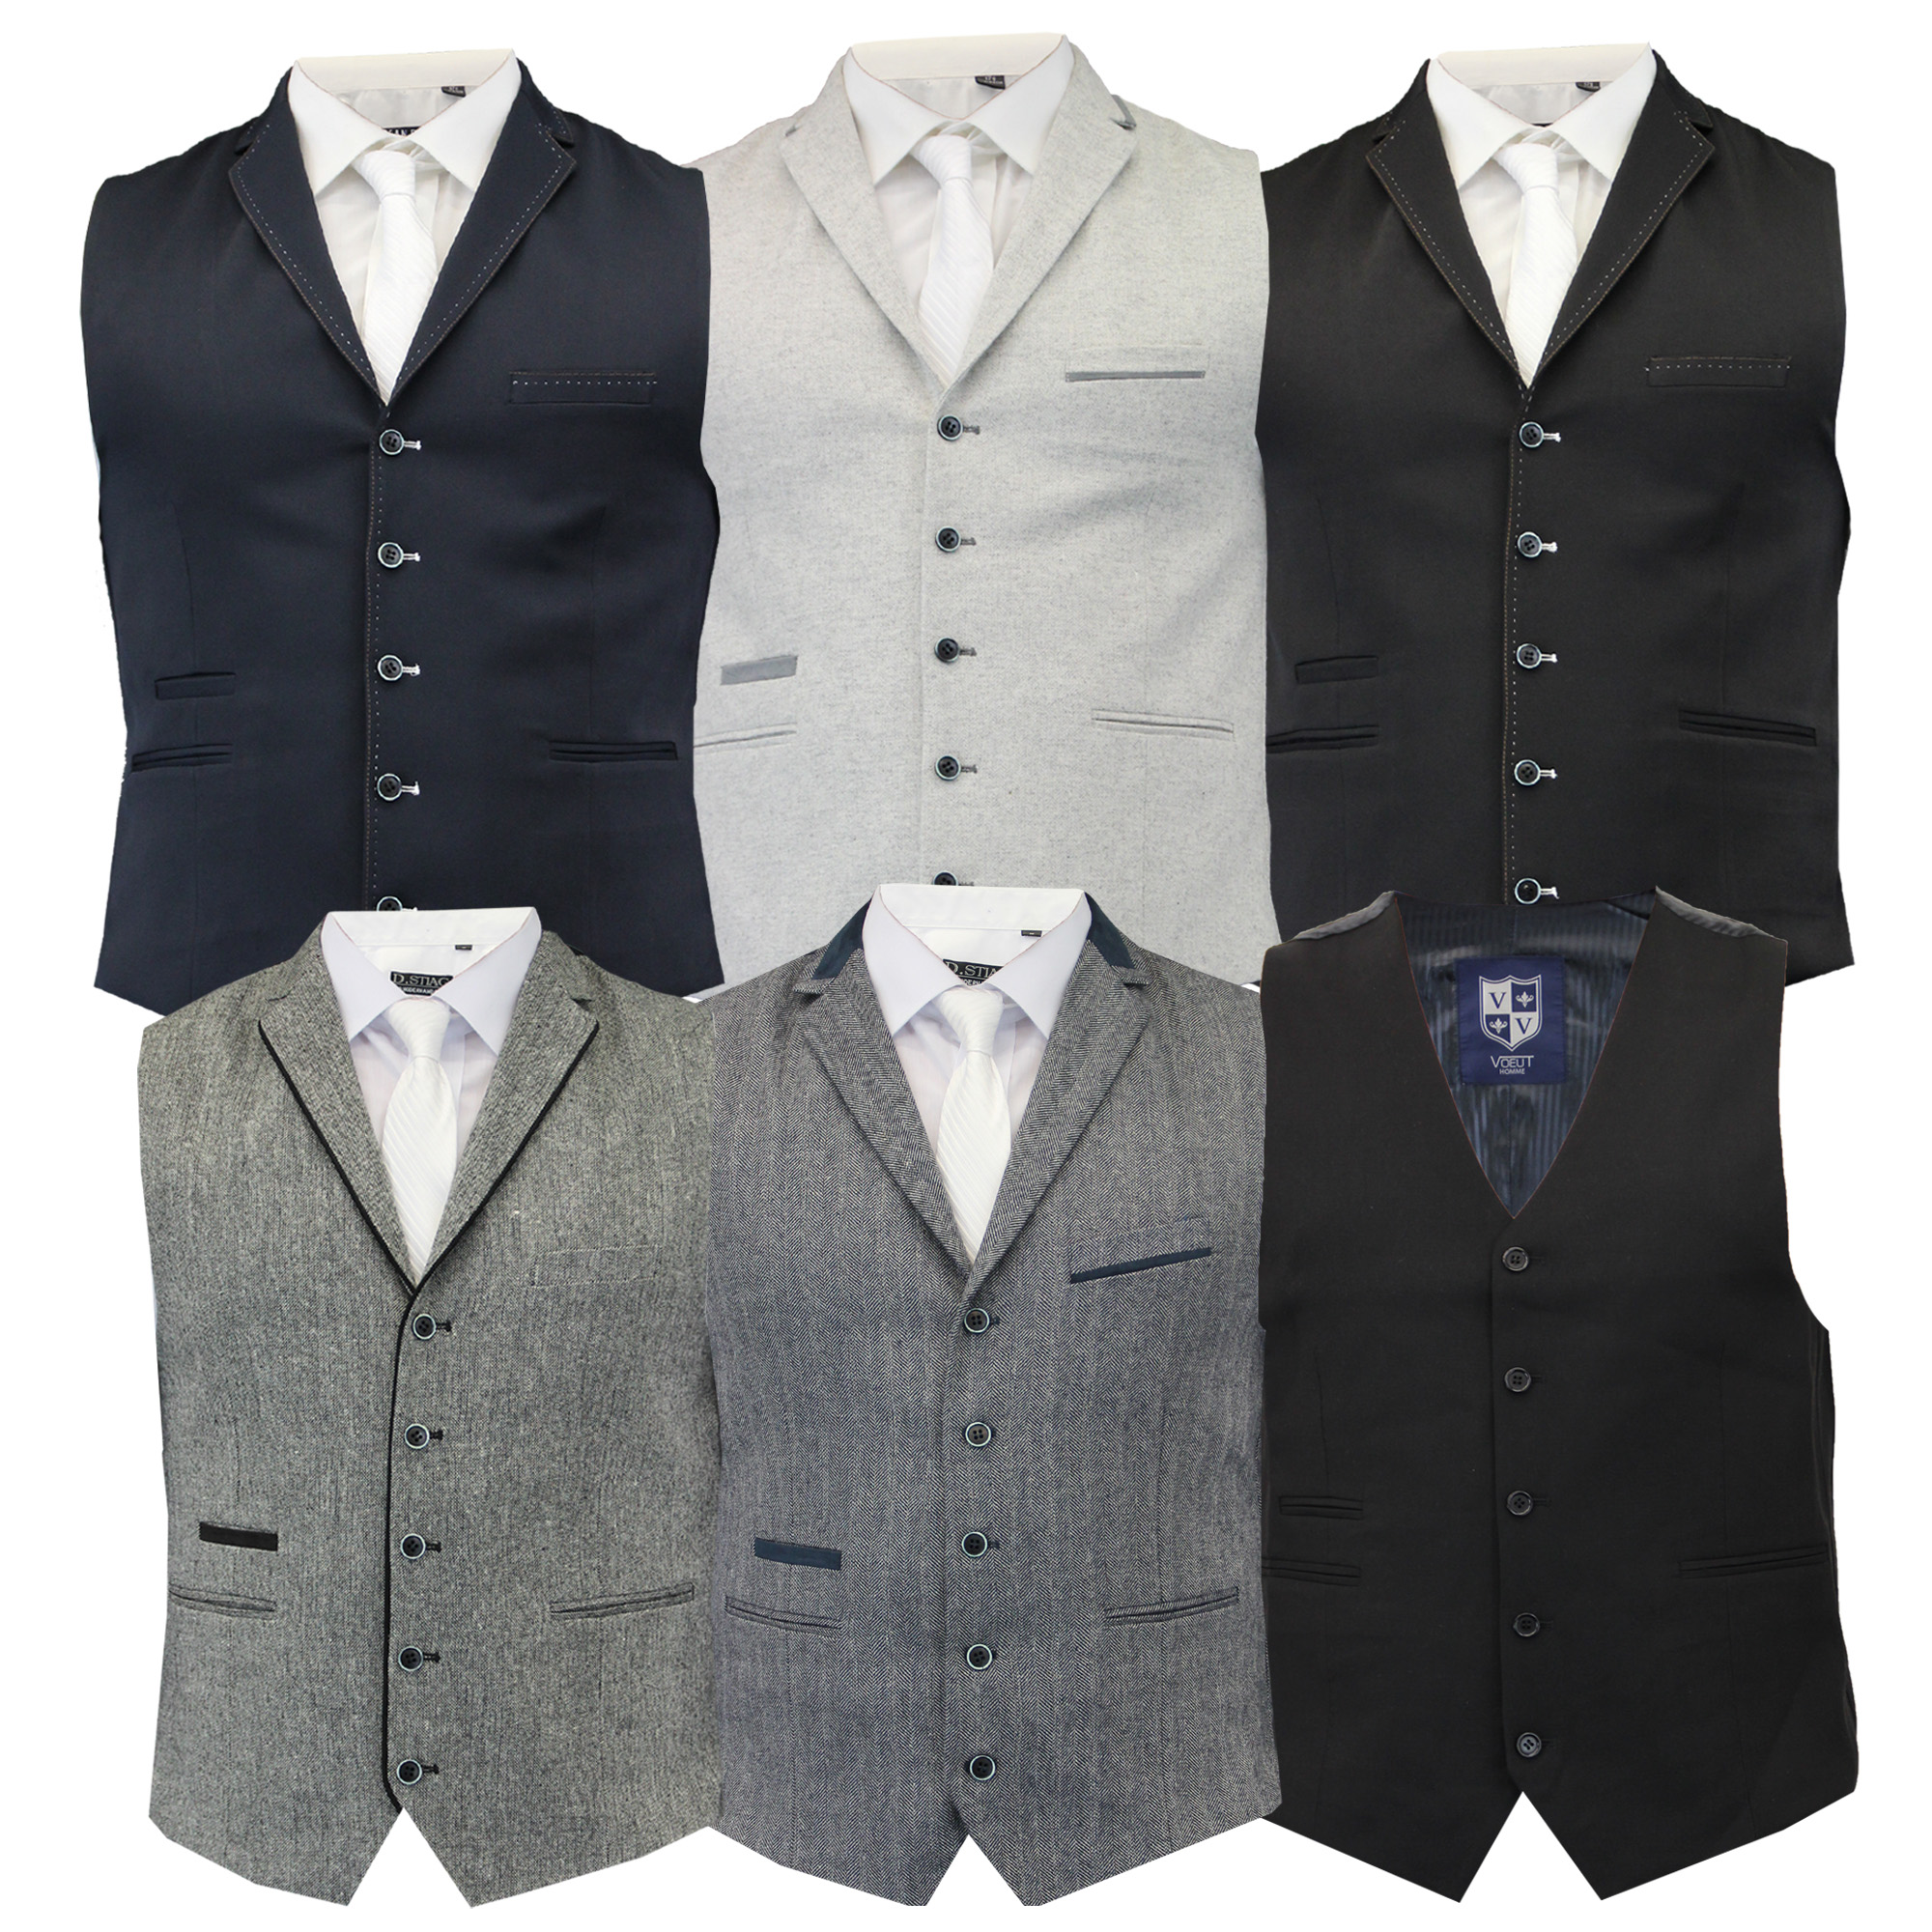 Waistcoats for Men. Men's waistcoats are the perfect way to take your tailoring to the next level. Whether it's to add to your suit or wear over a shirt, a waistcoat provides a .